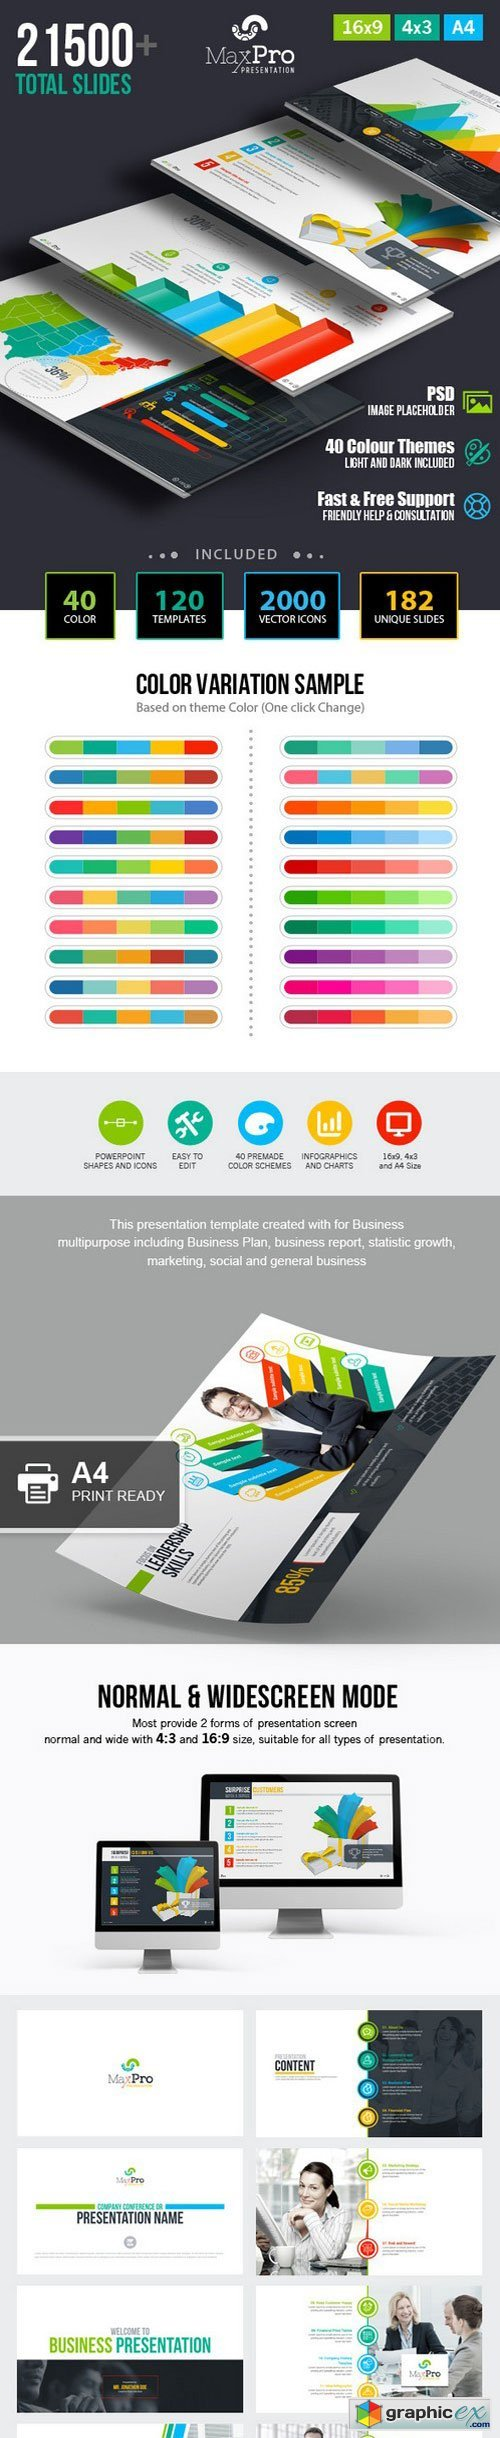 Maxpro business plan powerpoint presentation free download maxpro business plan powerpoint presentation cheaphphosting Gallery